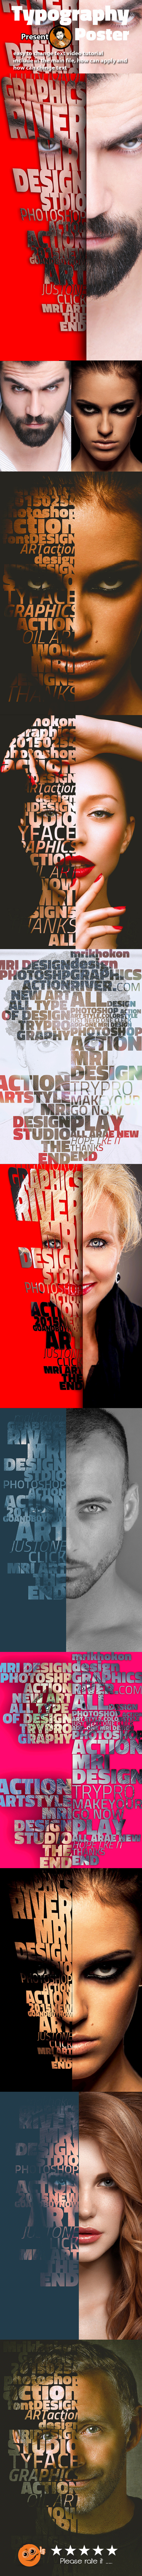 GraphicRiver Typography Poster Action 11324304